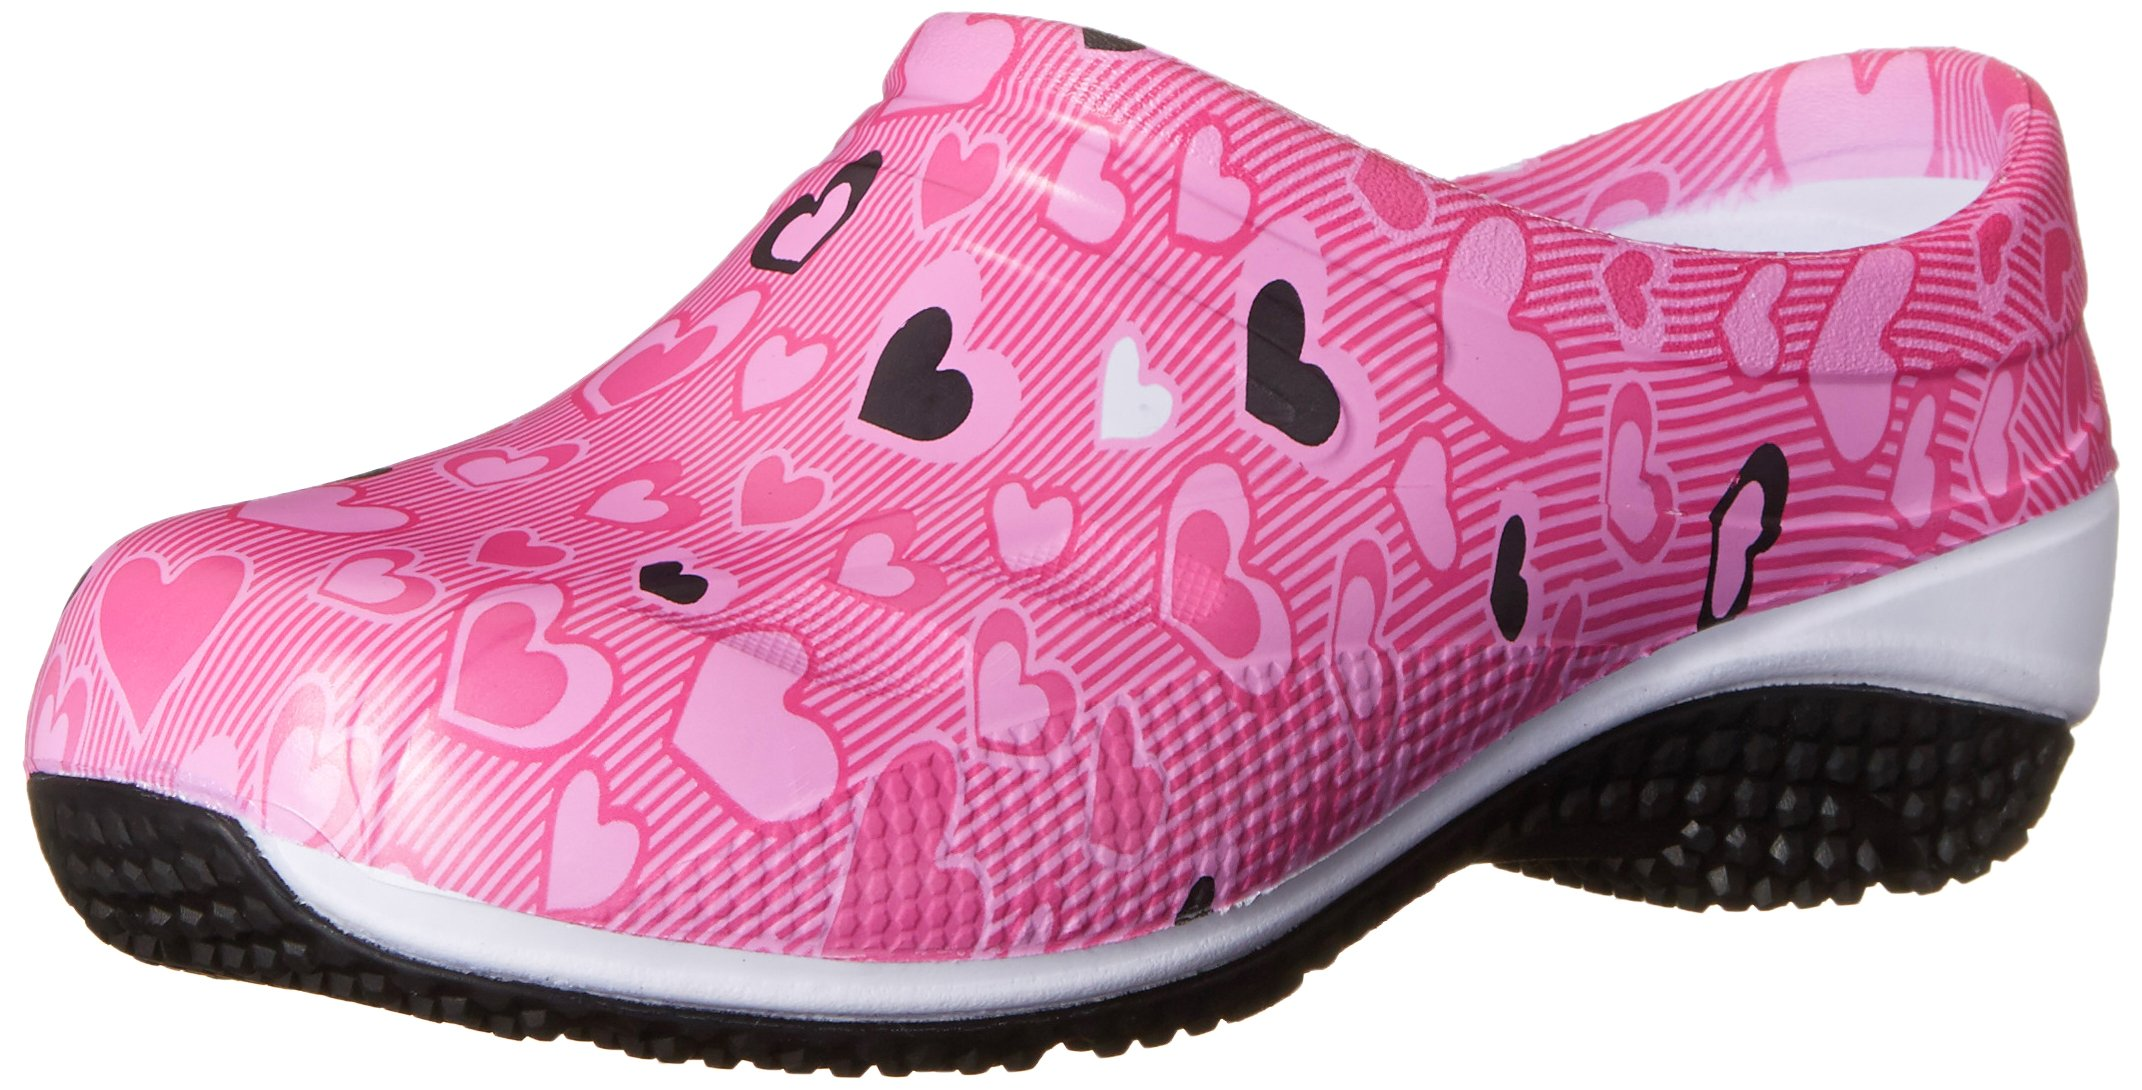 Anywear Exact Work Shoe, All About Love Print, 5 M US